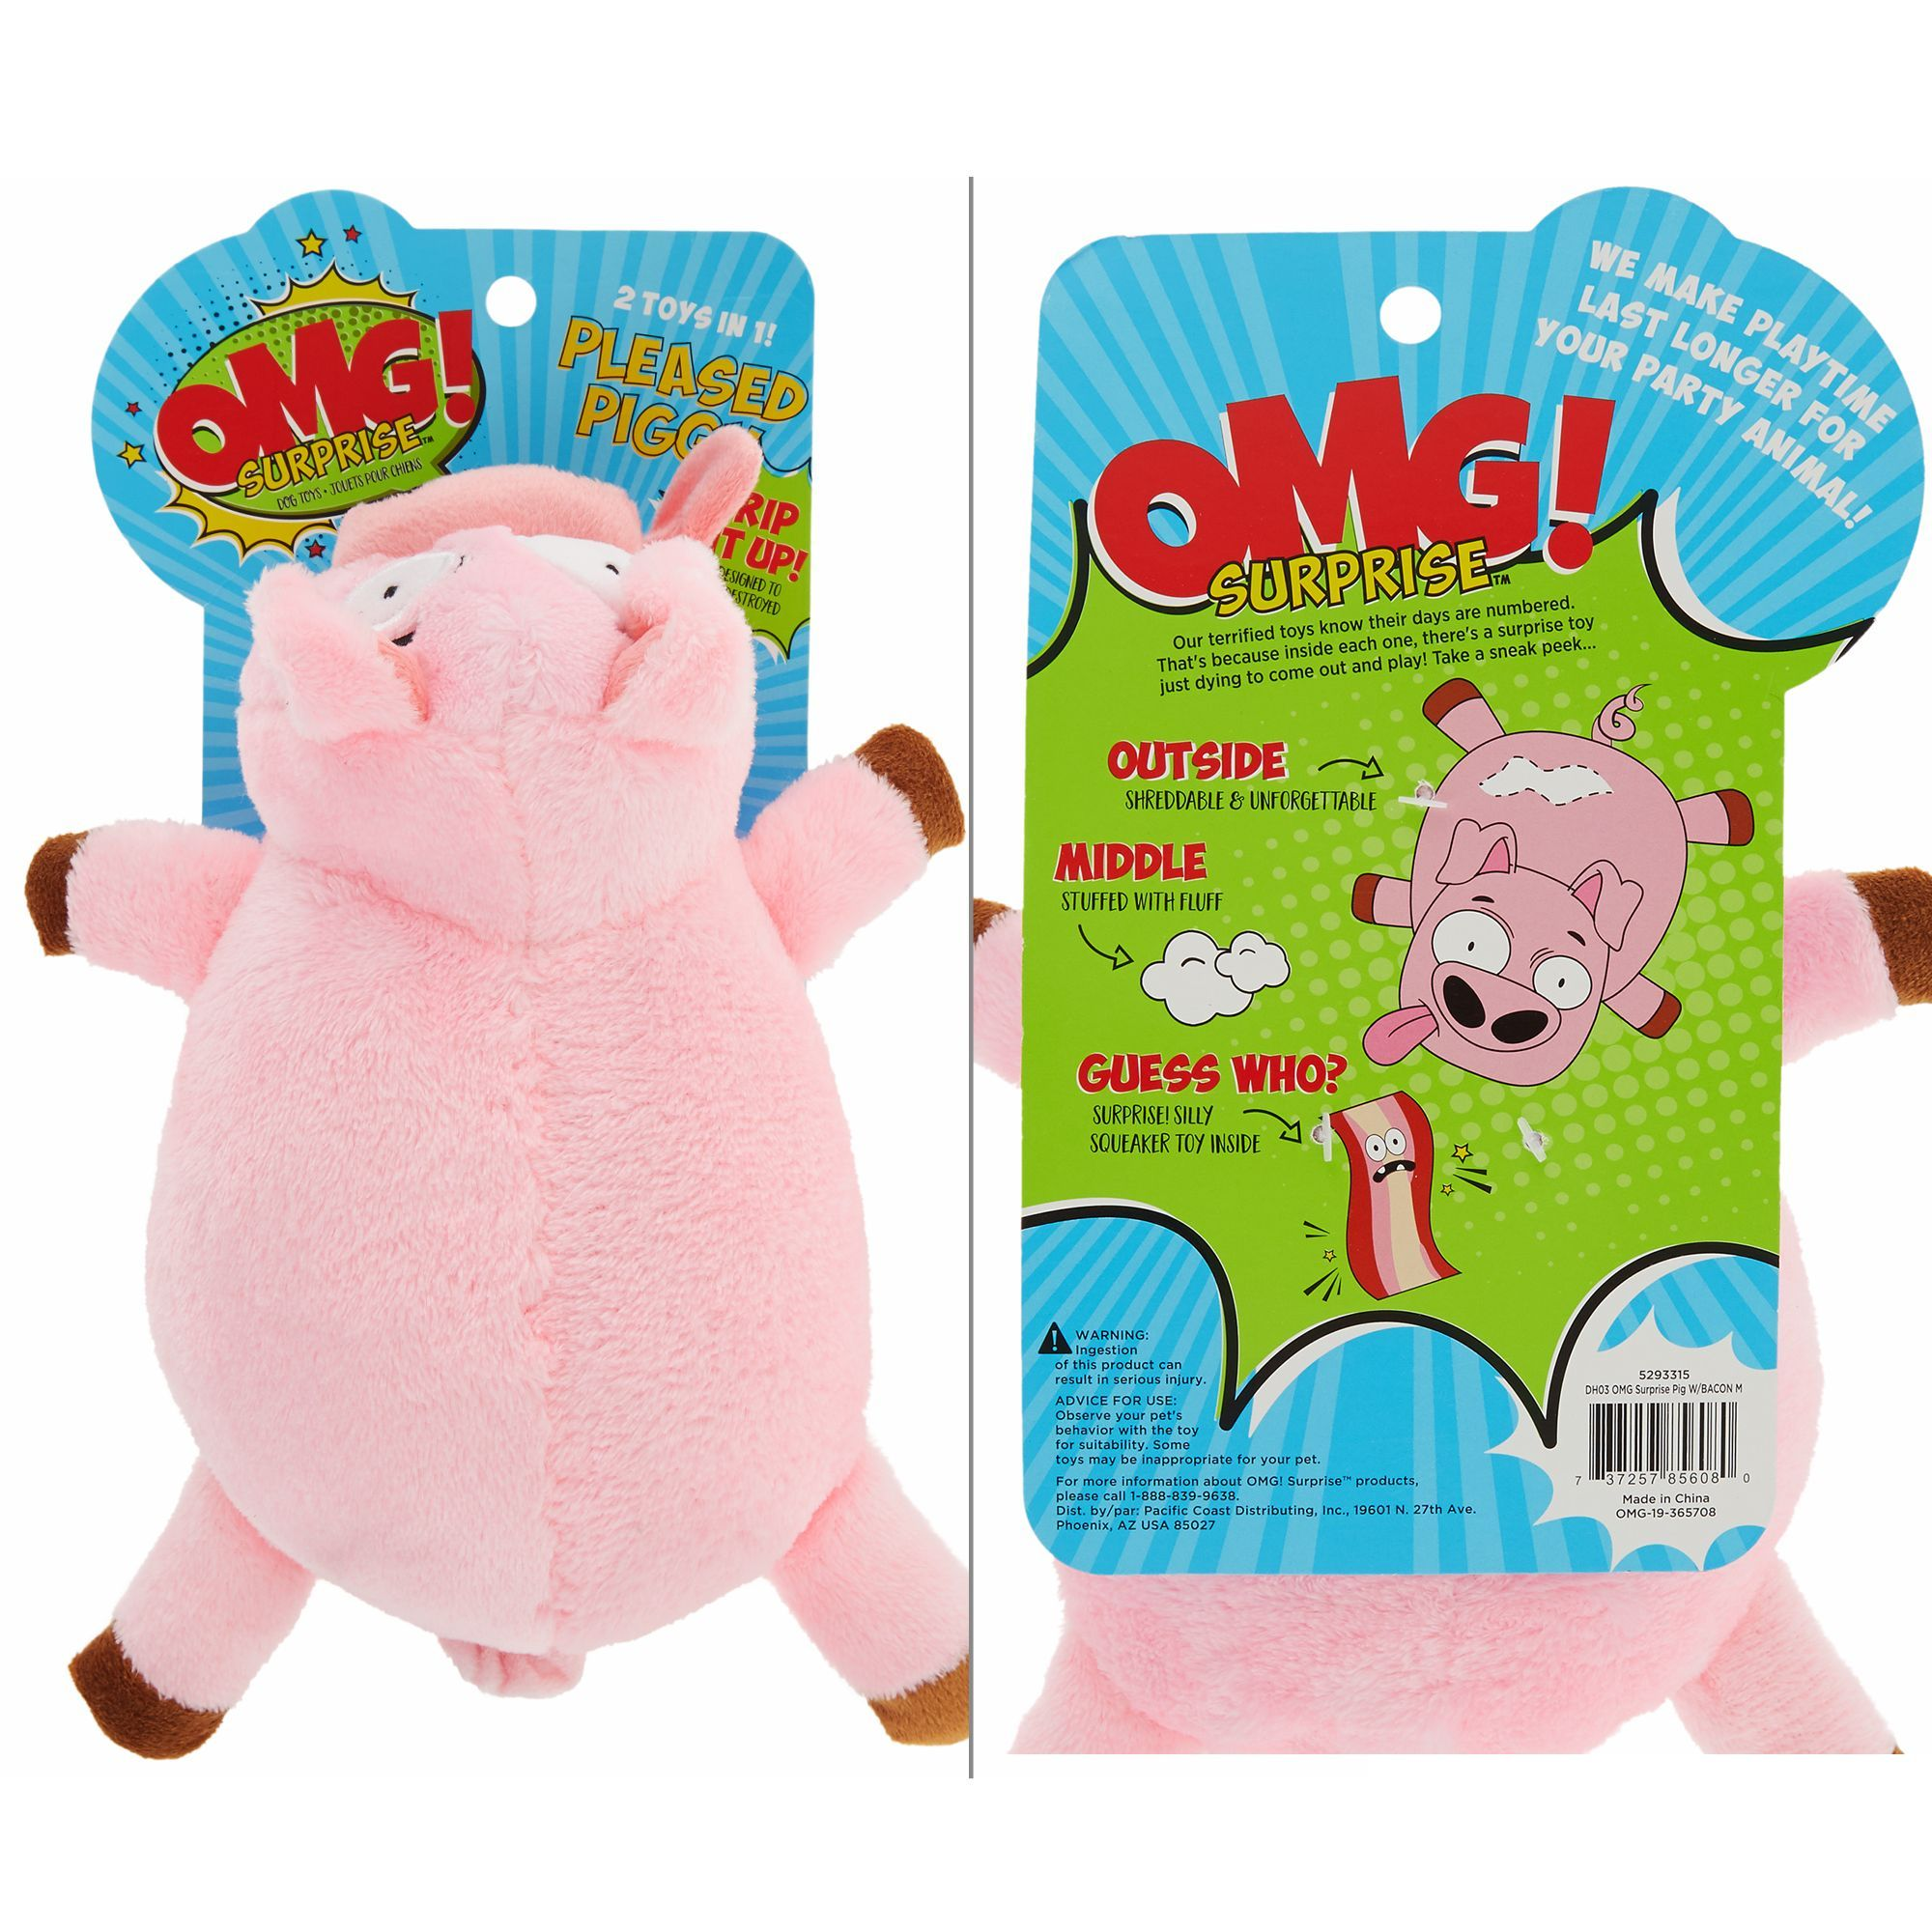 Omg Surprise Pleased Pig 2 In 1 Dog Toy Plush Squeaker Dog